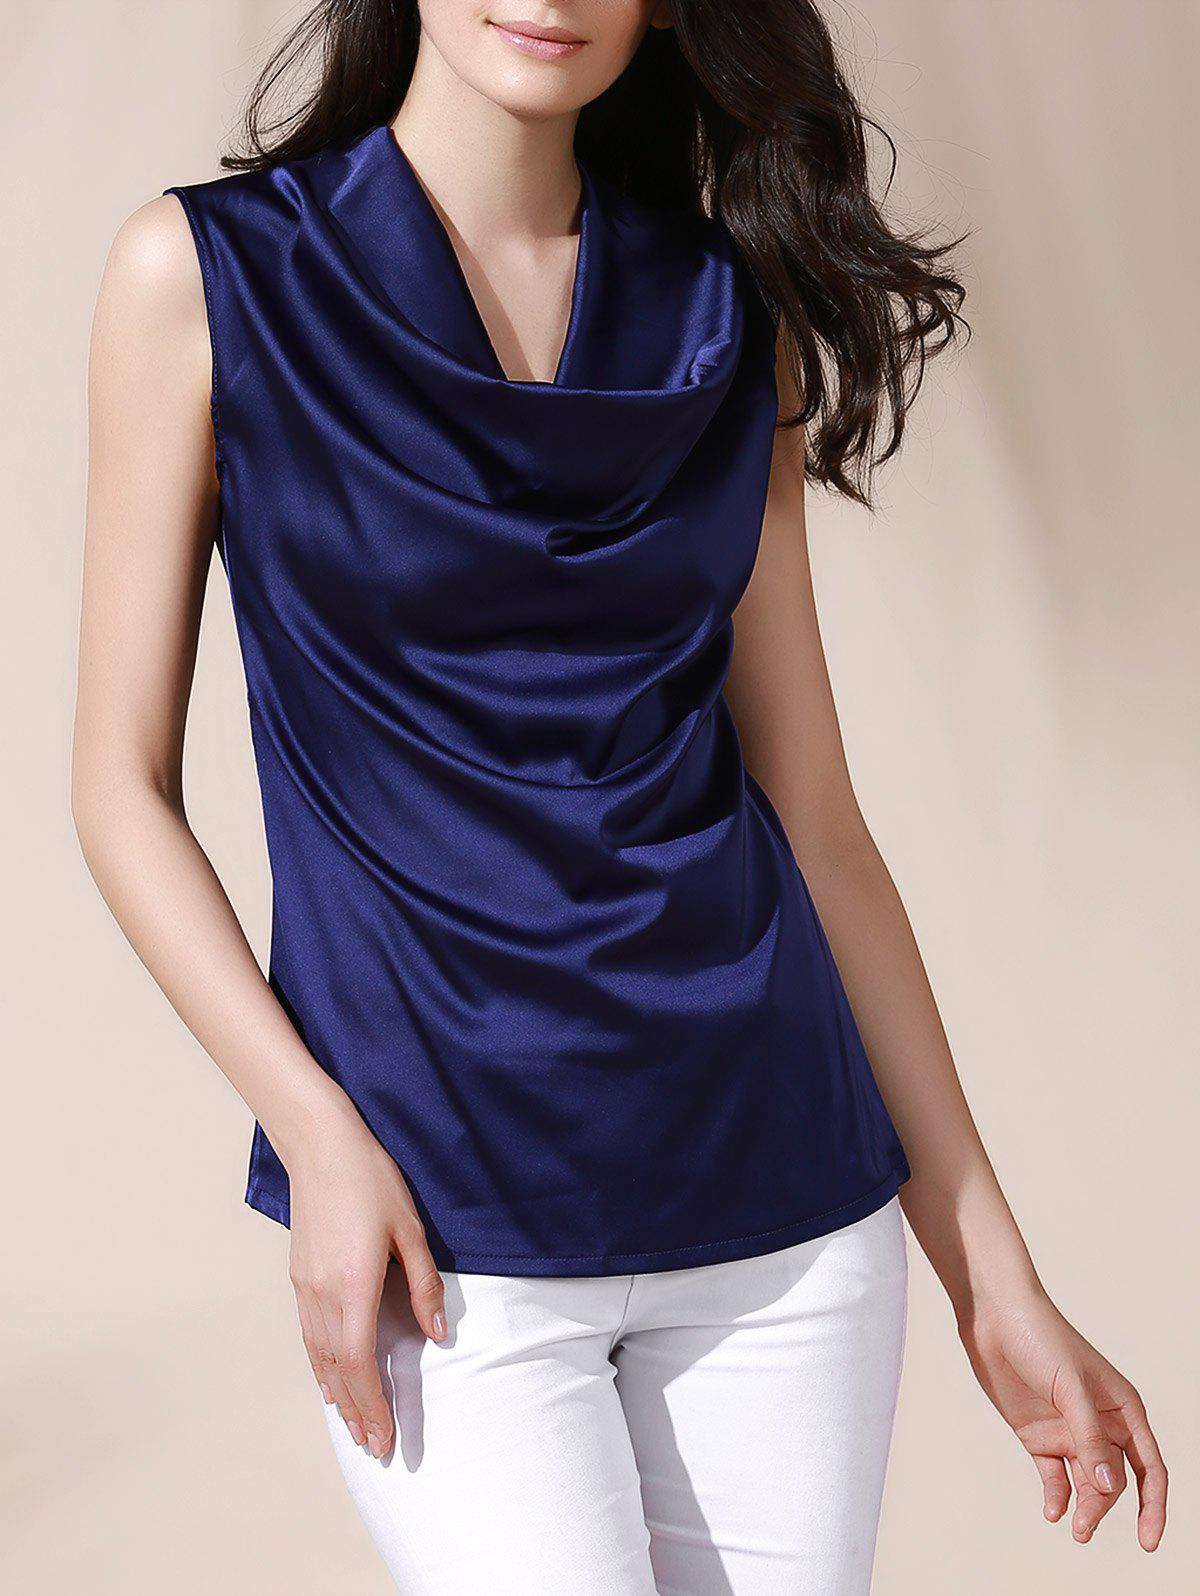 Graceful Women's Cowl Neck Solid Color Sleeveless Blouse - DEEP BLUE L